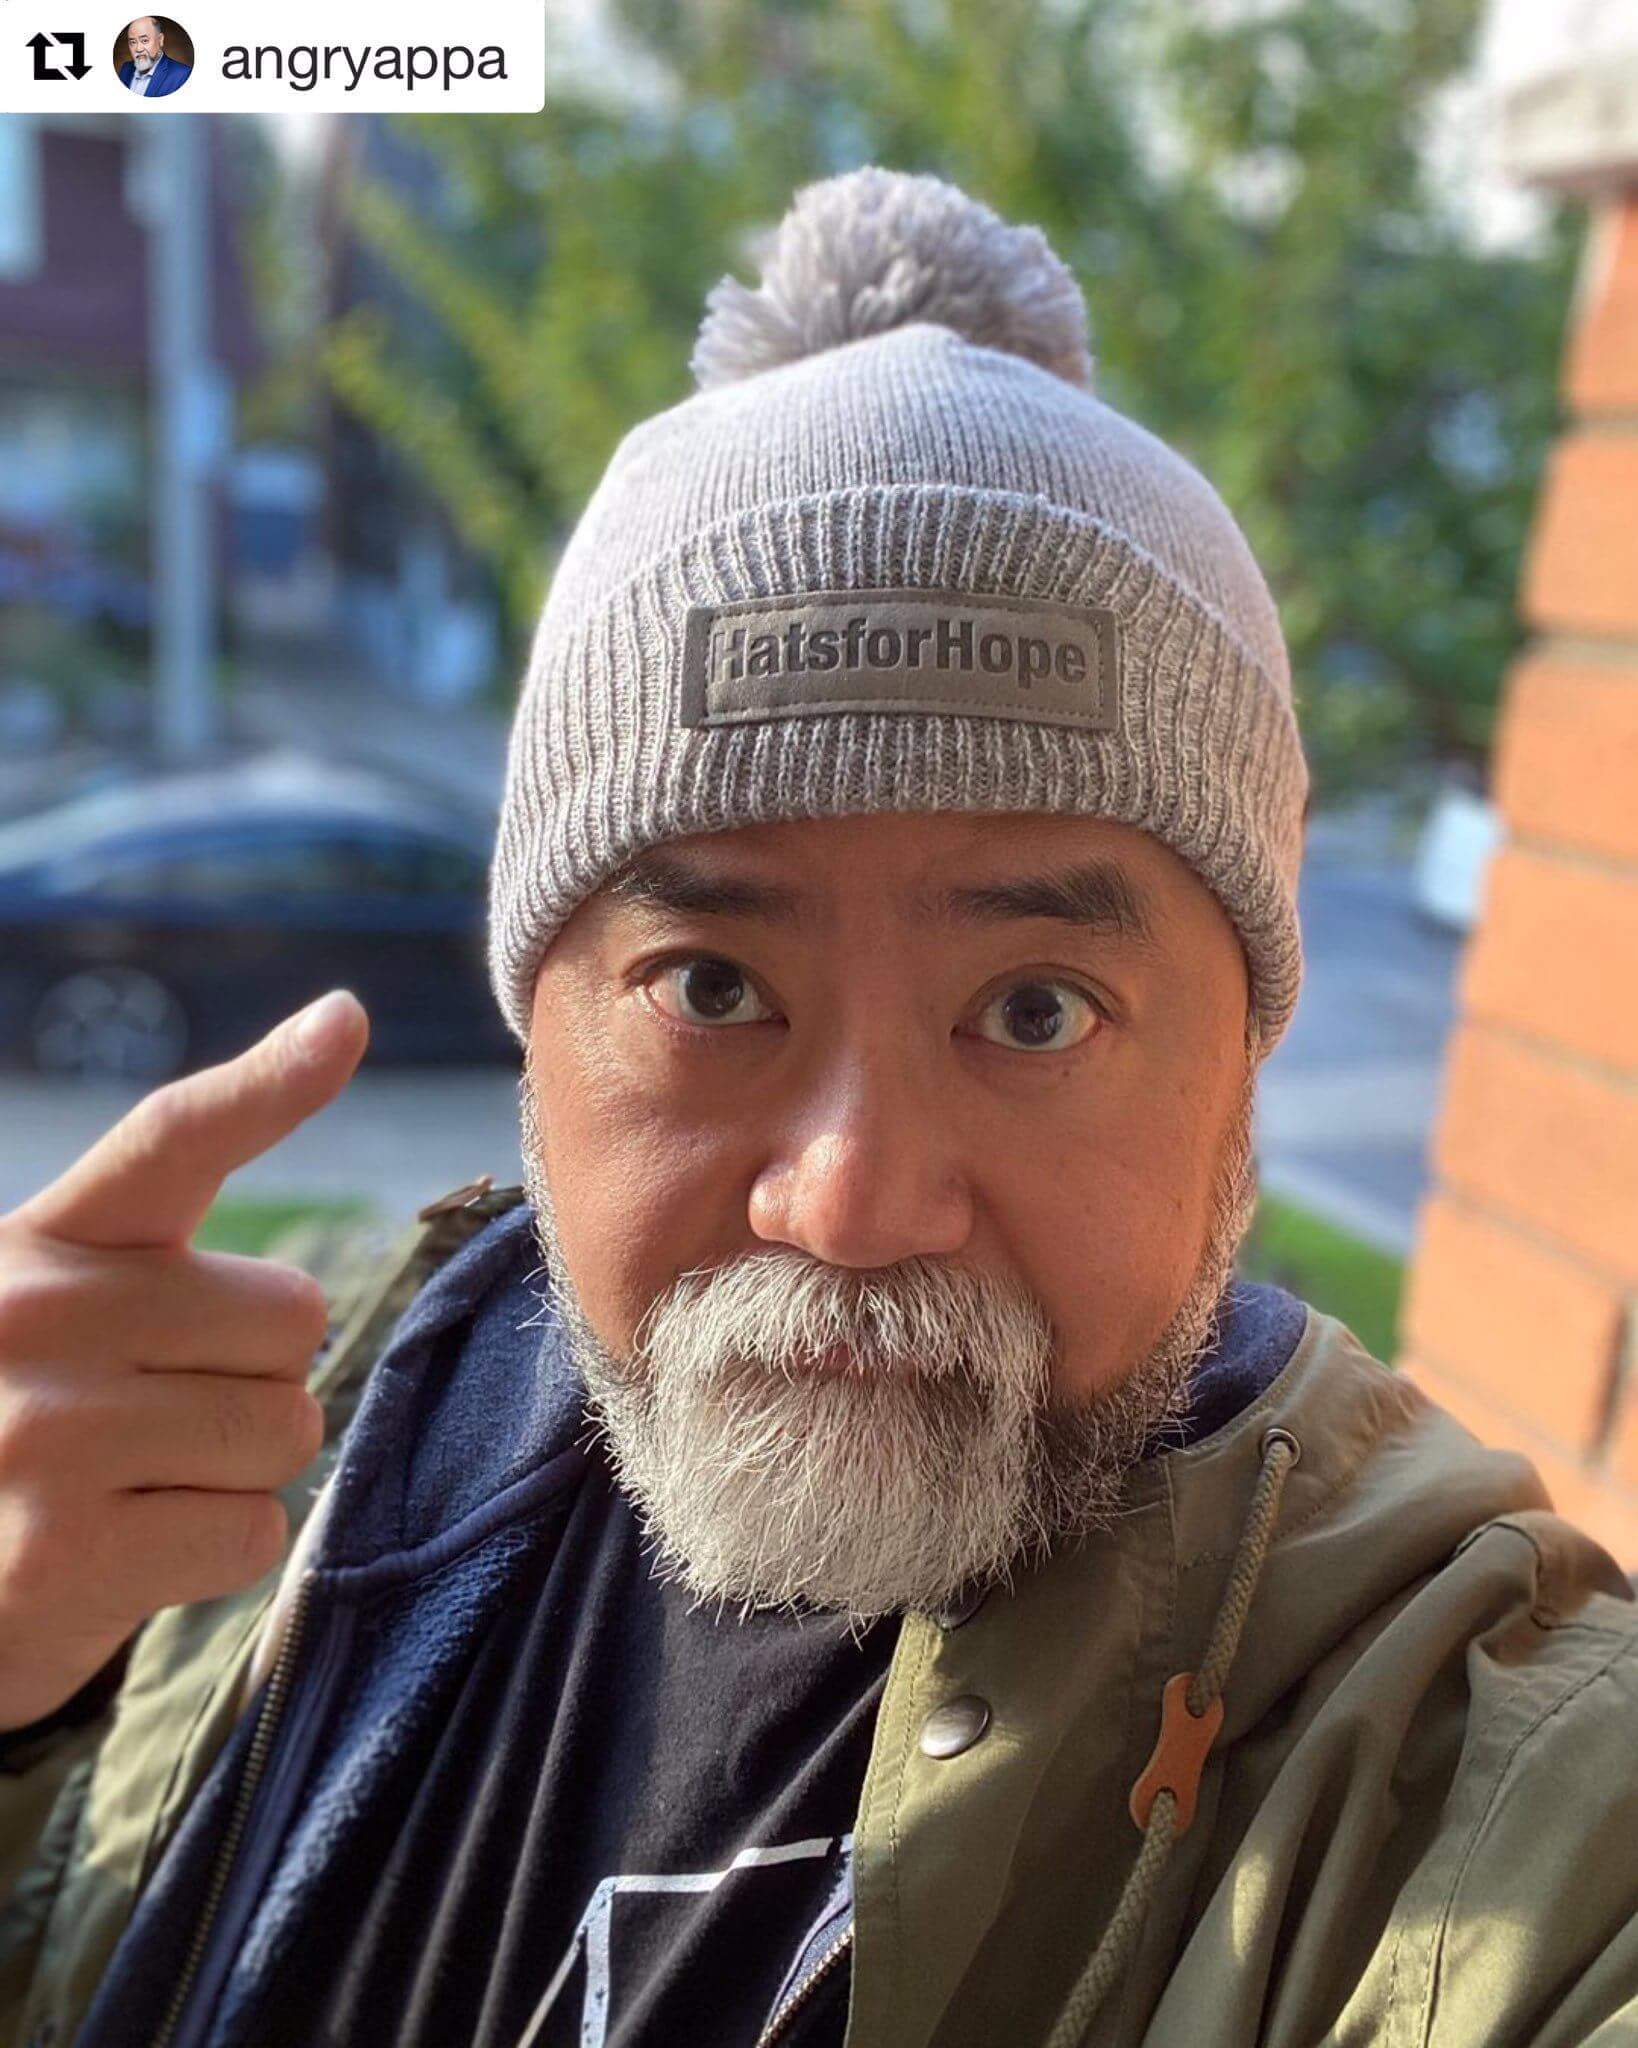 Actor Paul Sun-Hyung Lee (Kim's Convenience) wearing his Hats for Hope toque.